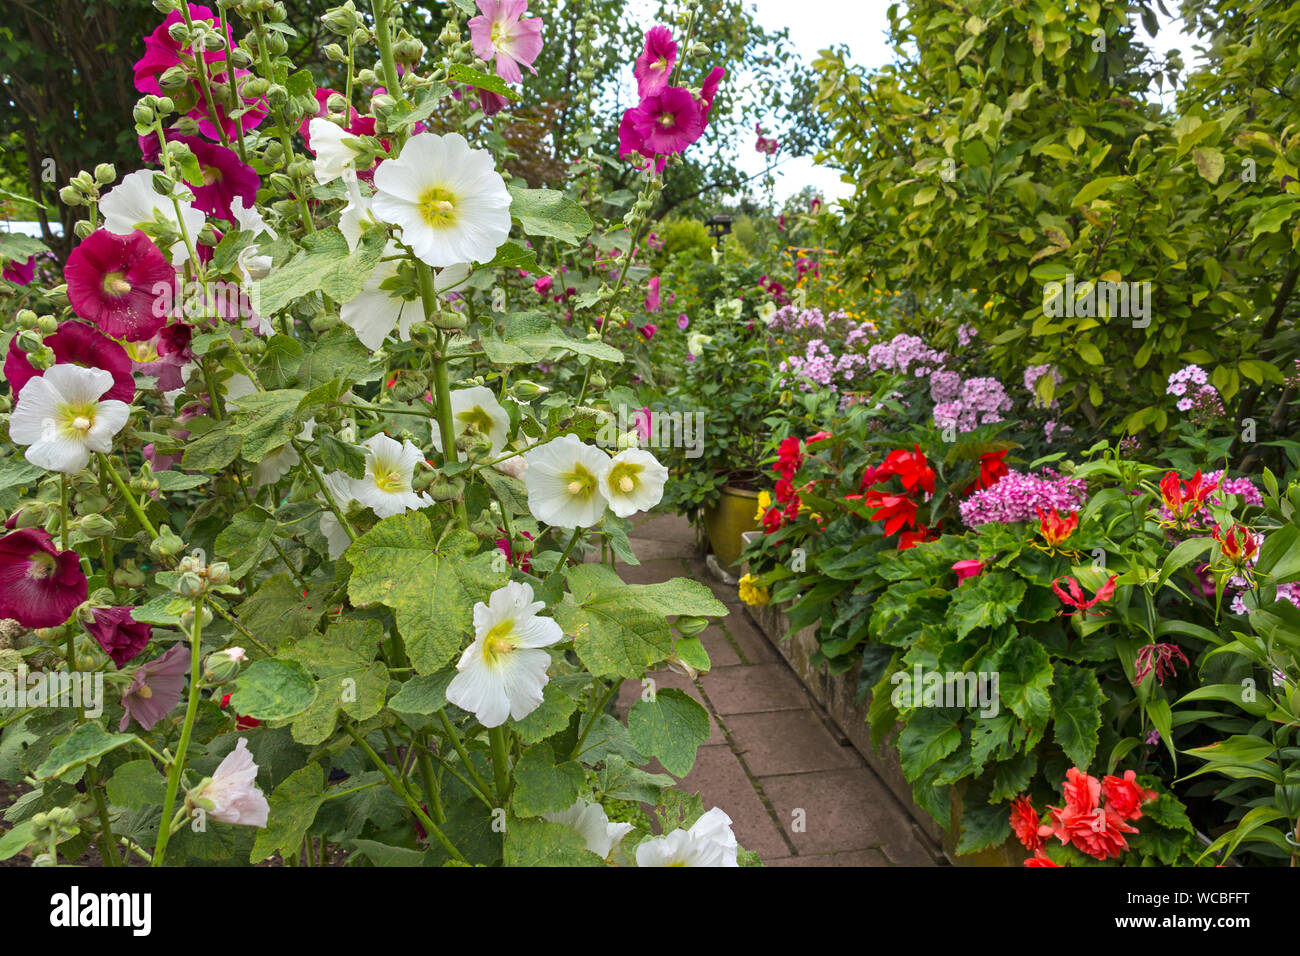 Flowers Blooming Outdoors Stock Photo